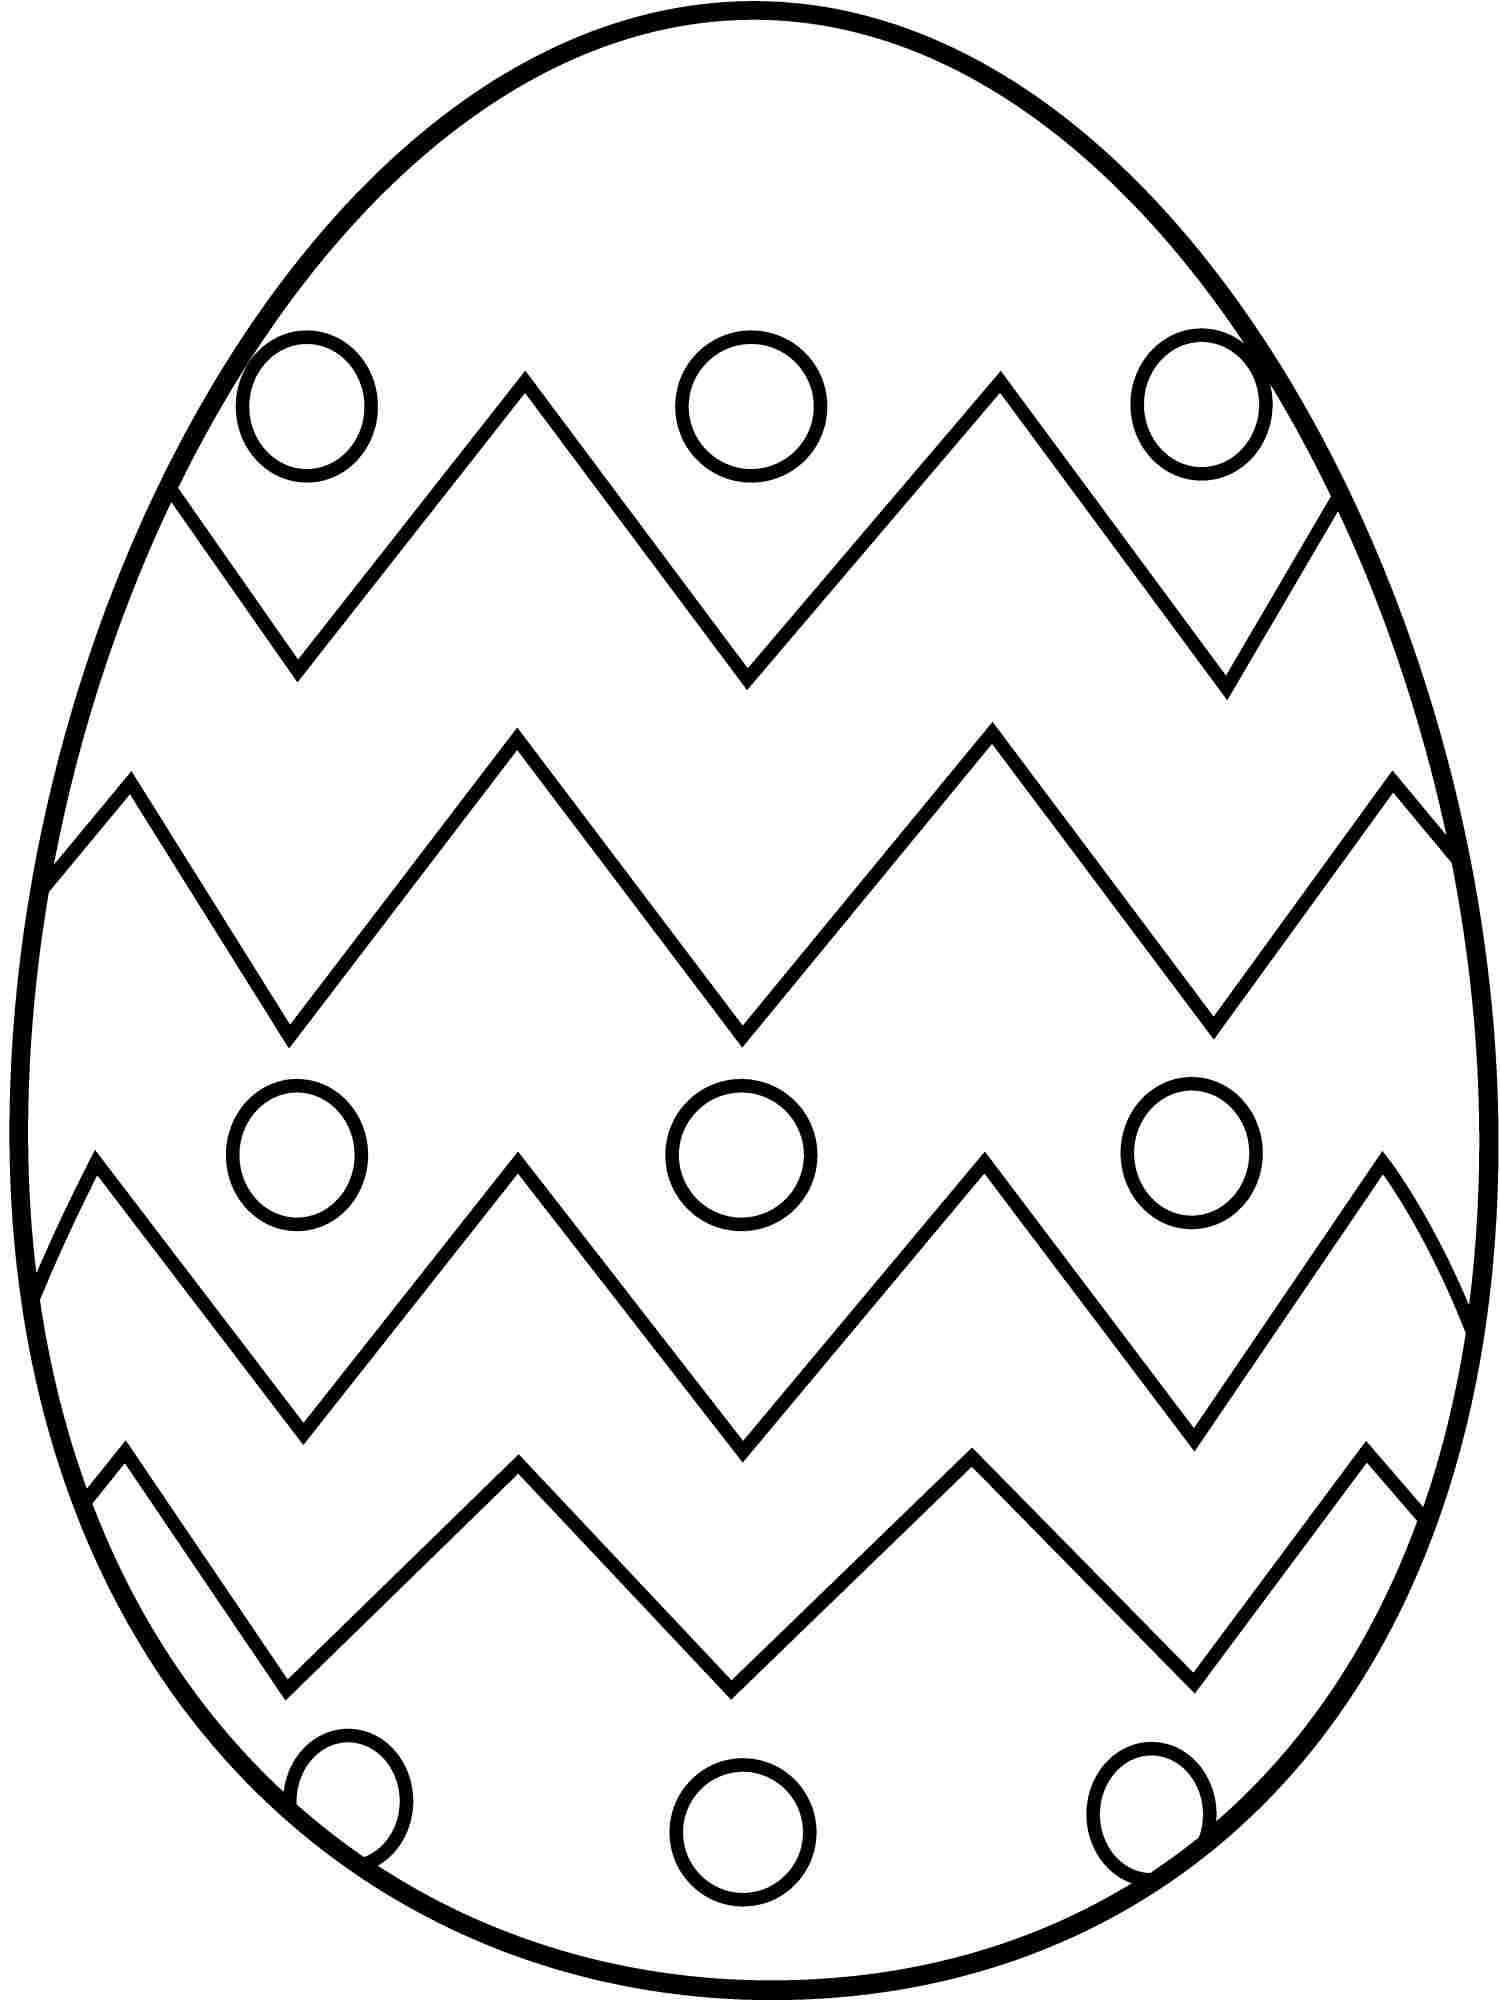 Free Printable Easter Coloring Pages For Preschoolers At